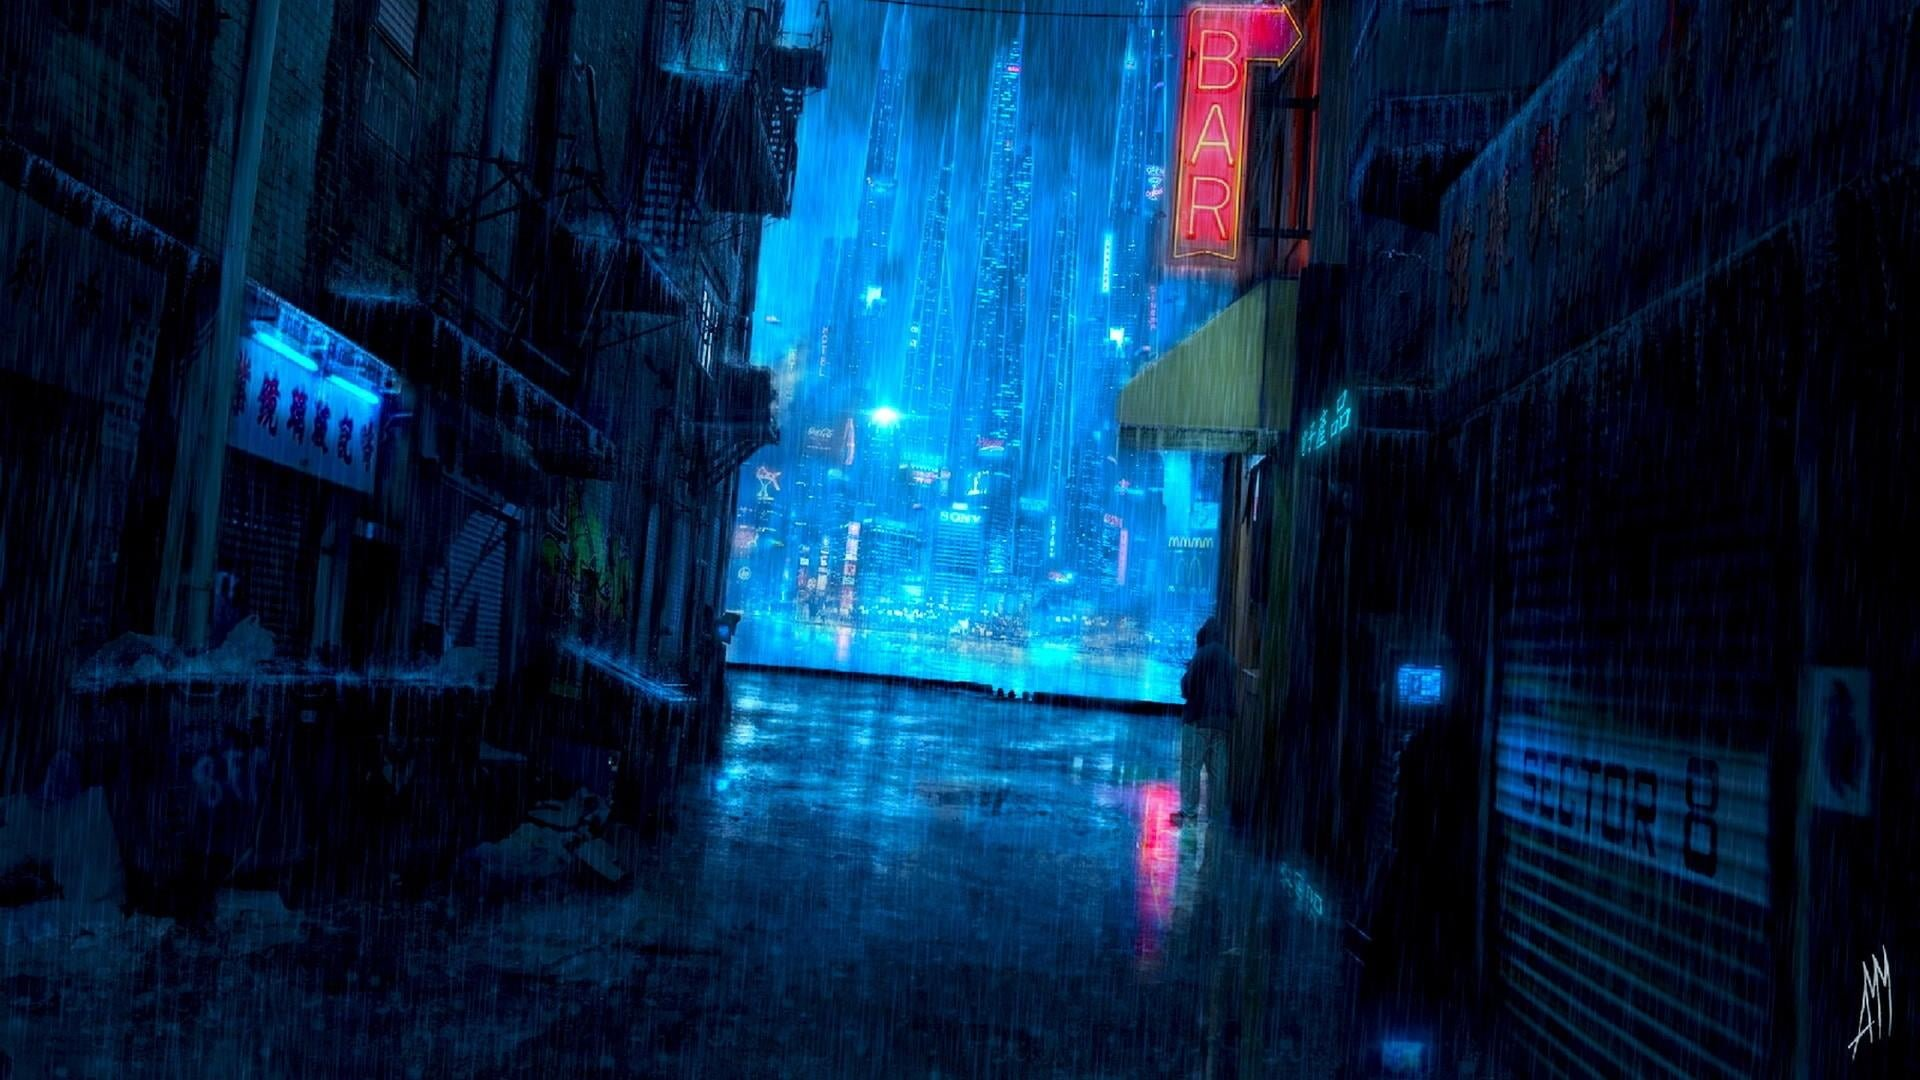 Cyberpunk rain aesthetic water city lights raining darkness 1920x1080